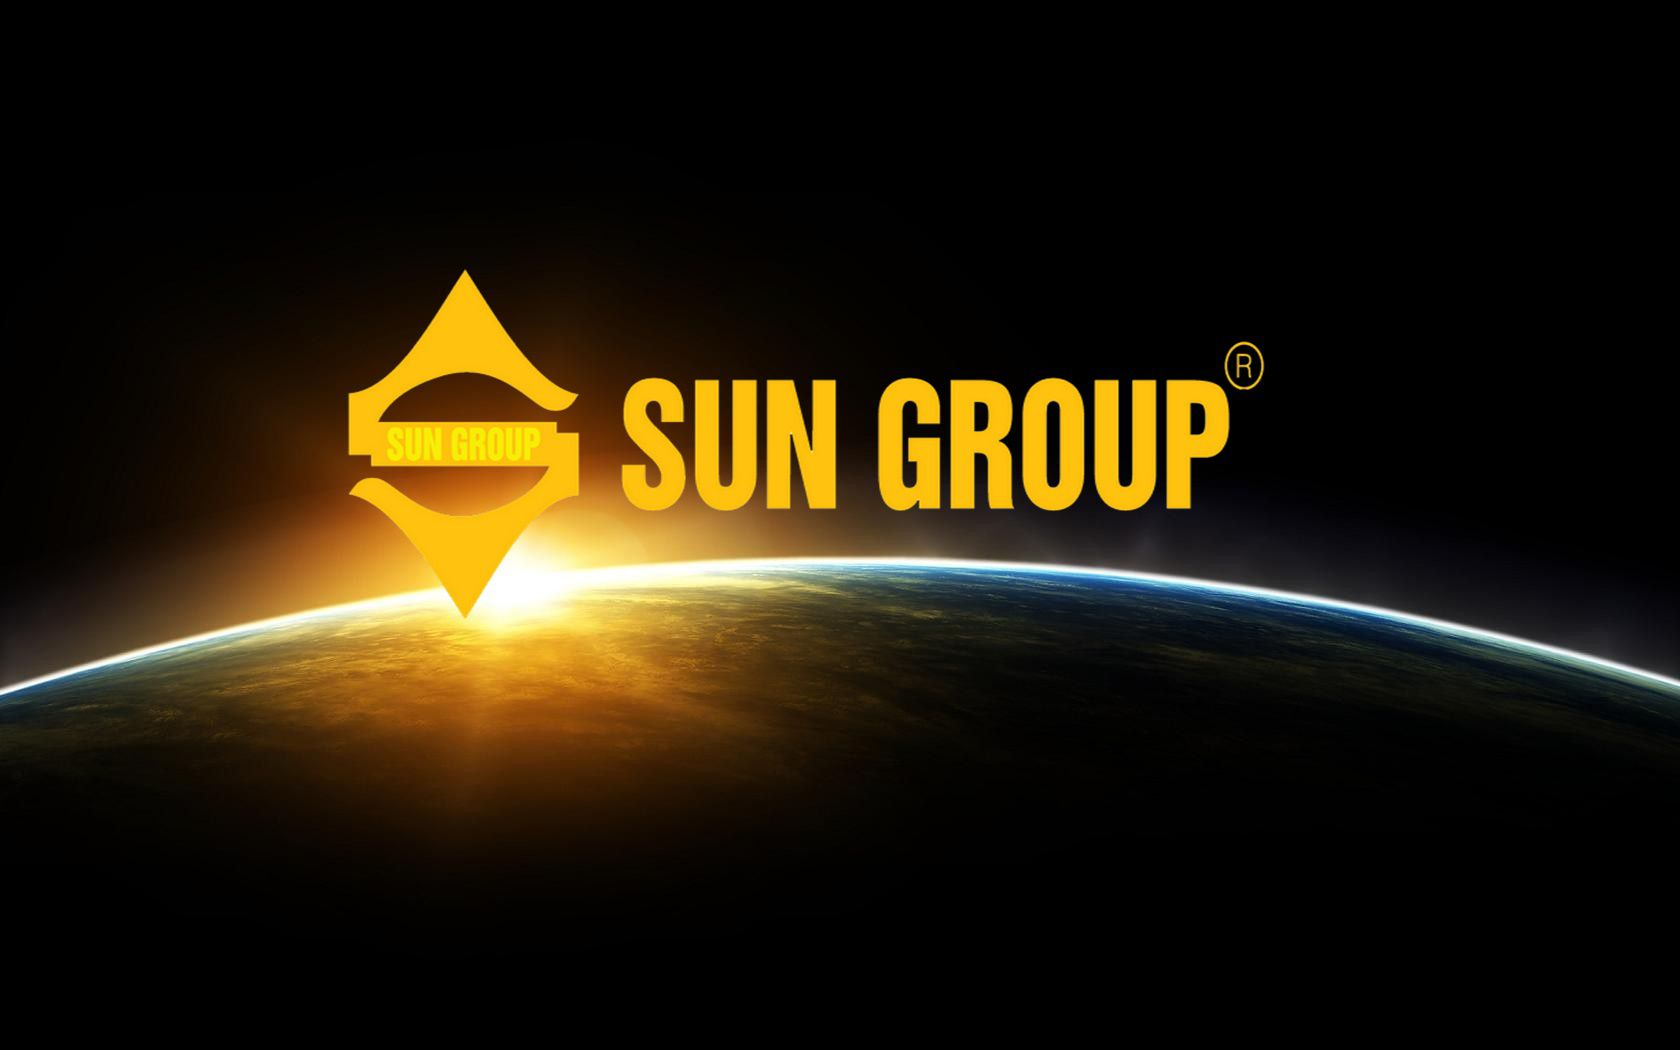 logo tap doan Sun group